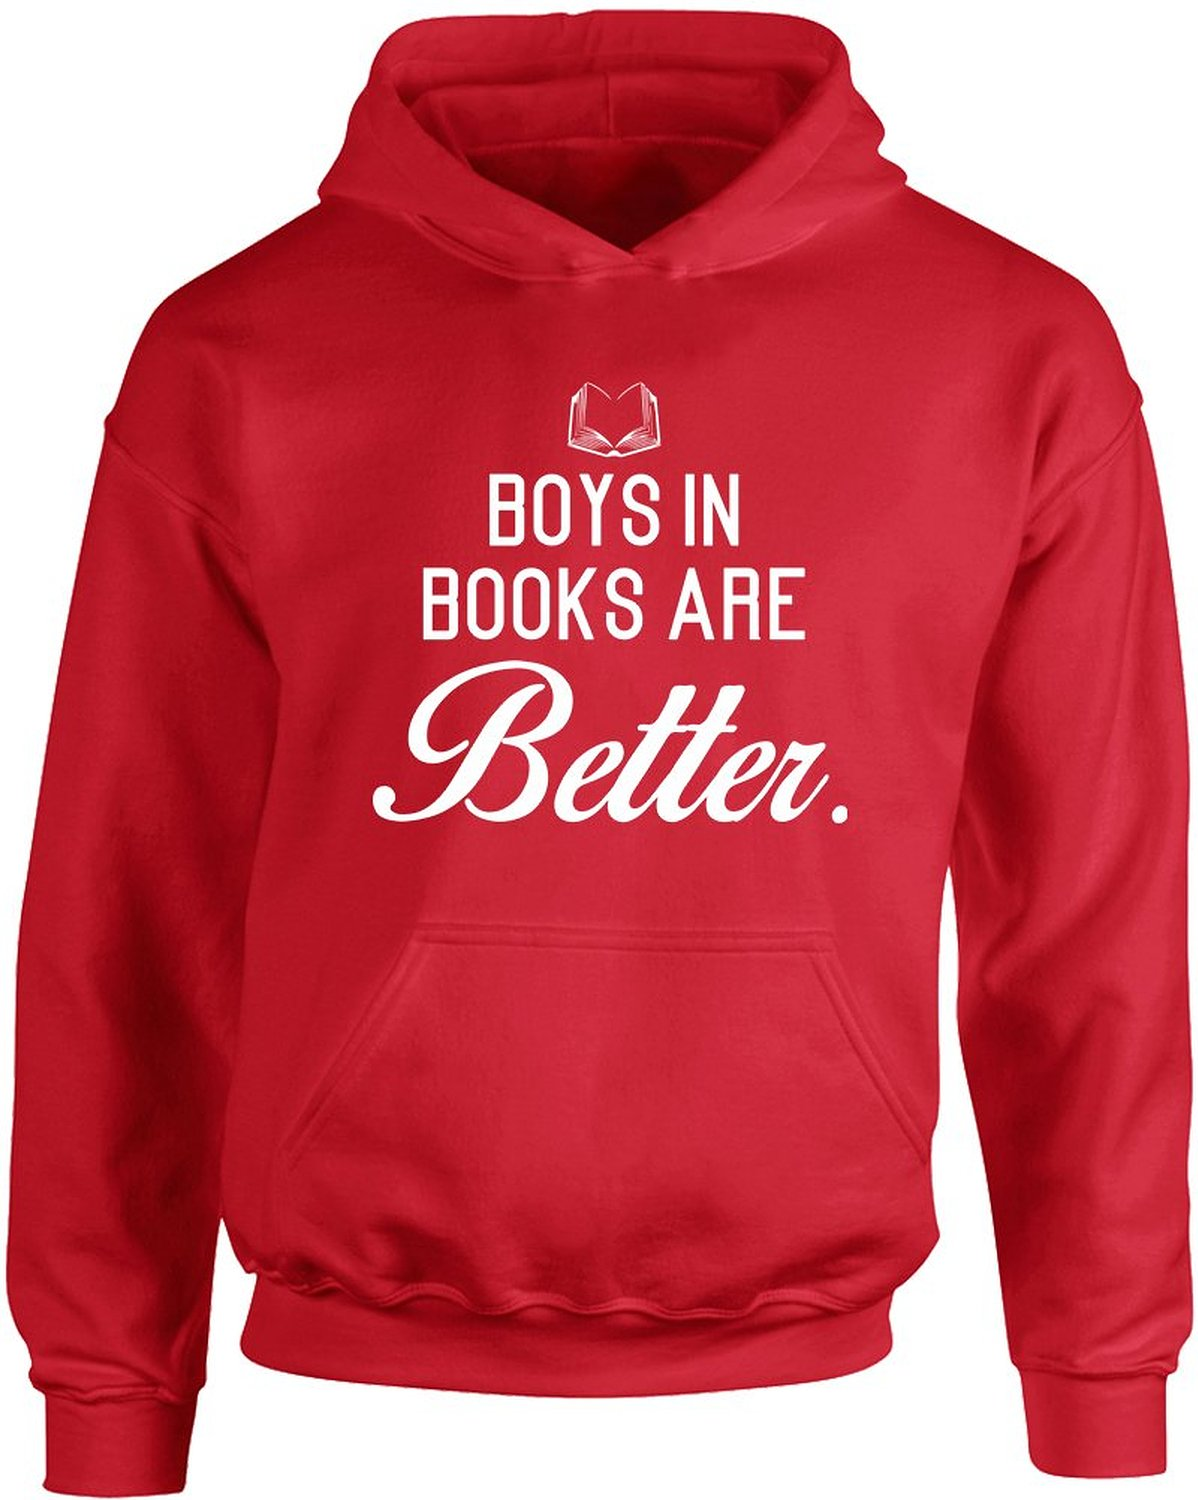 Amazon.com: Boys In Books Are Better , Kids Printed Hoodie: Clothing